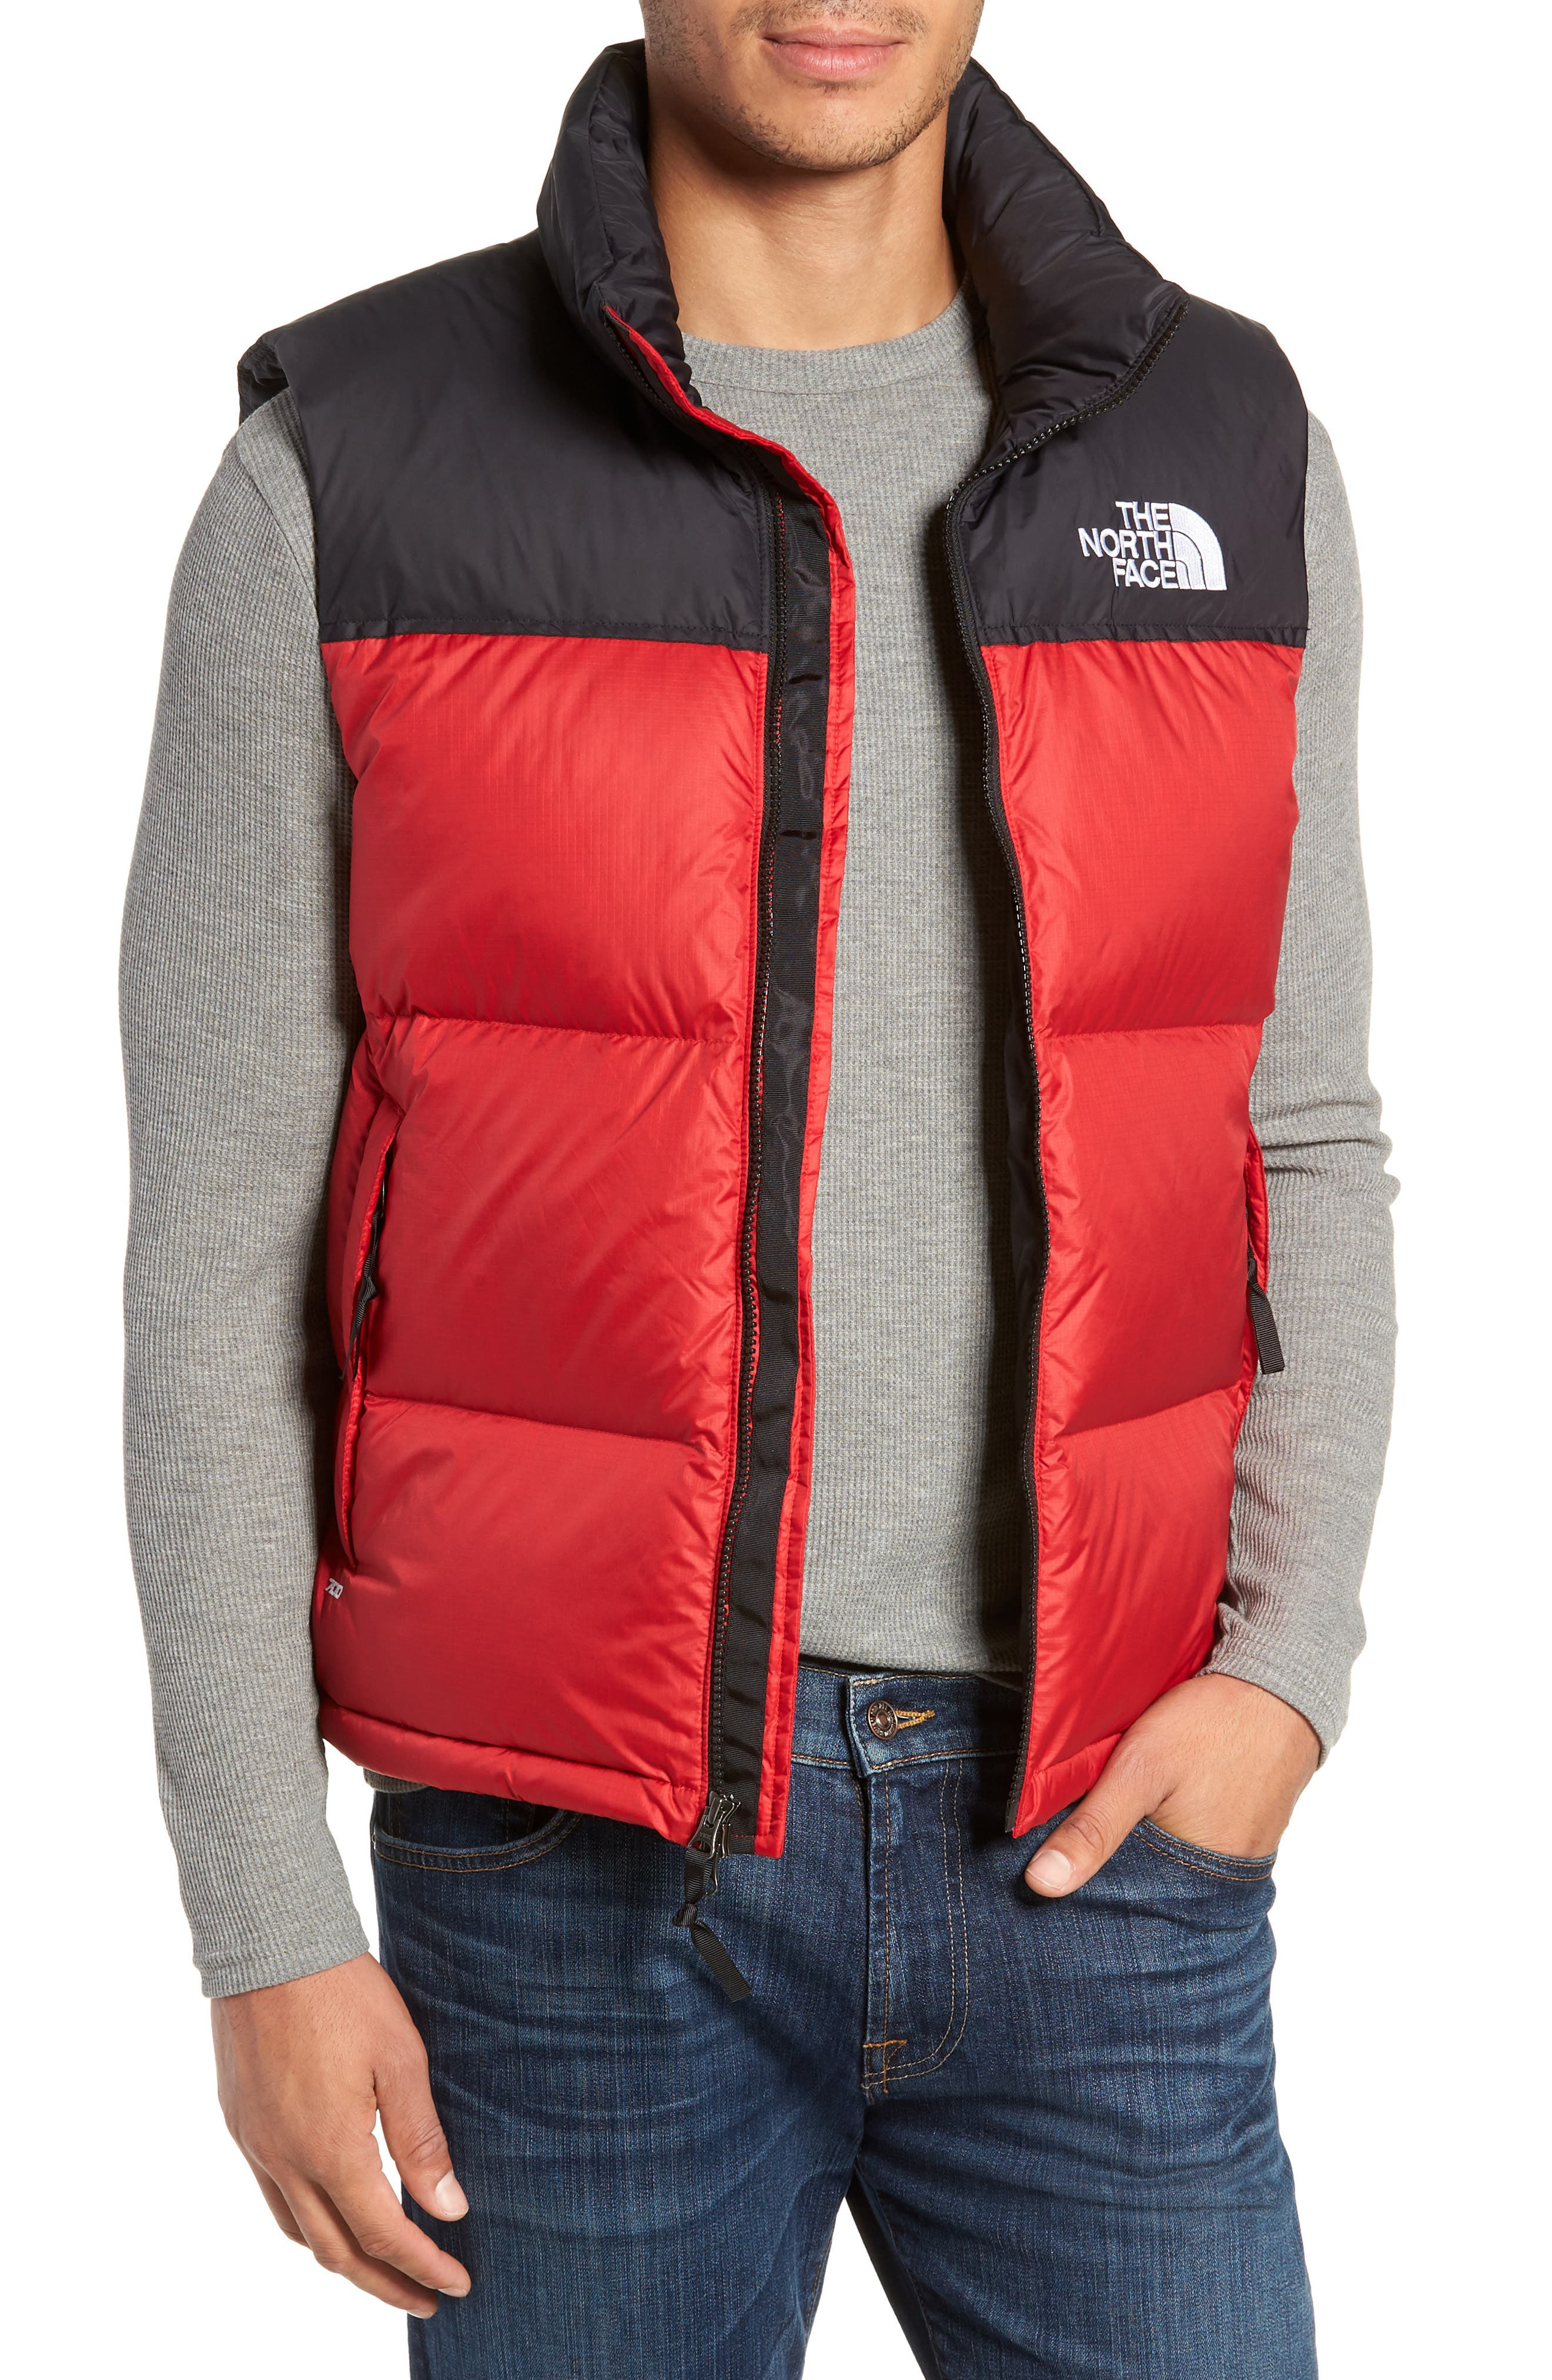 The North Face Nuptse 1996 Packable Quilted Down Vest, Red